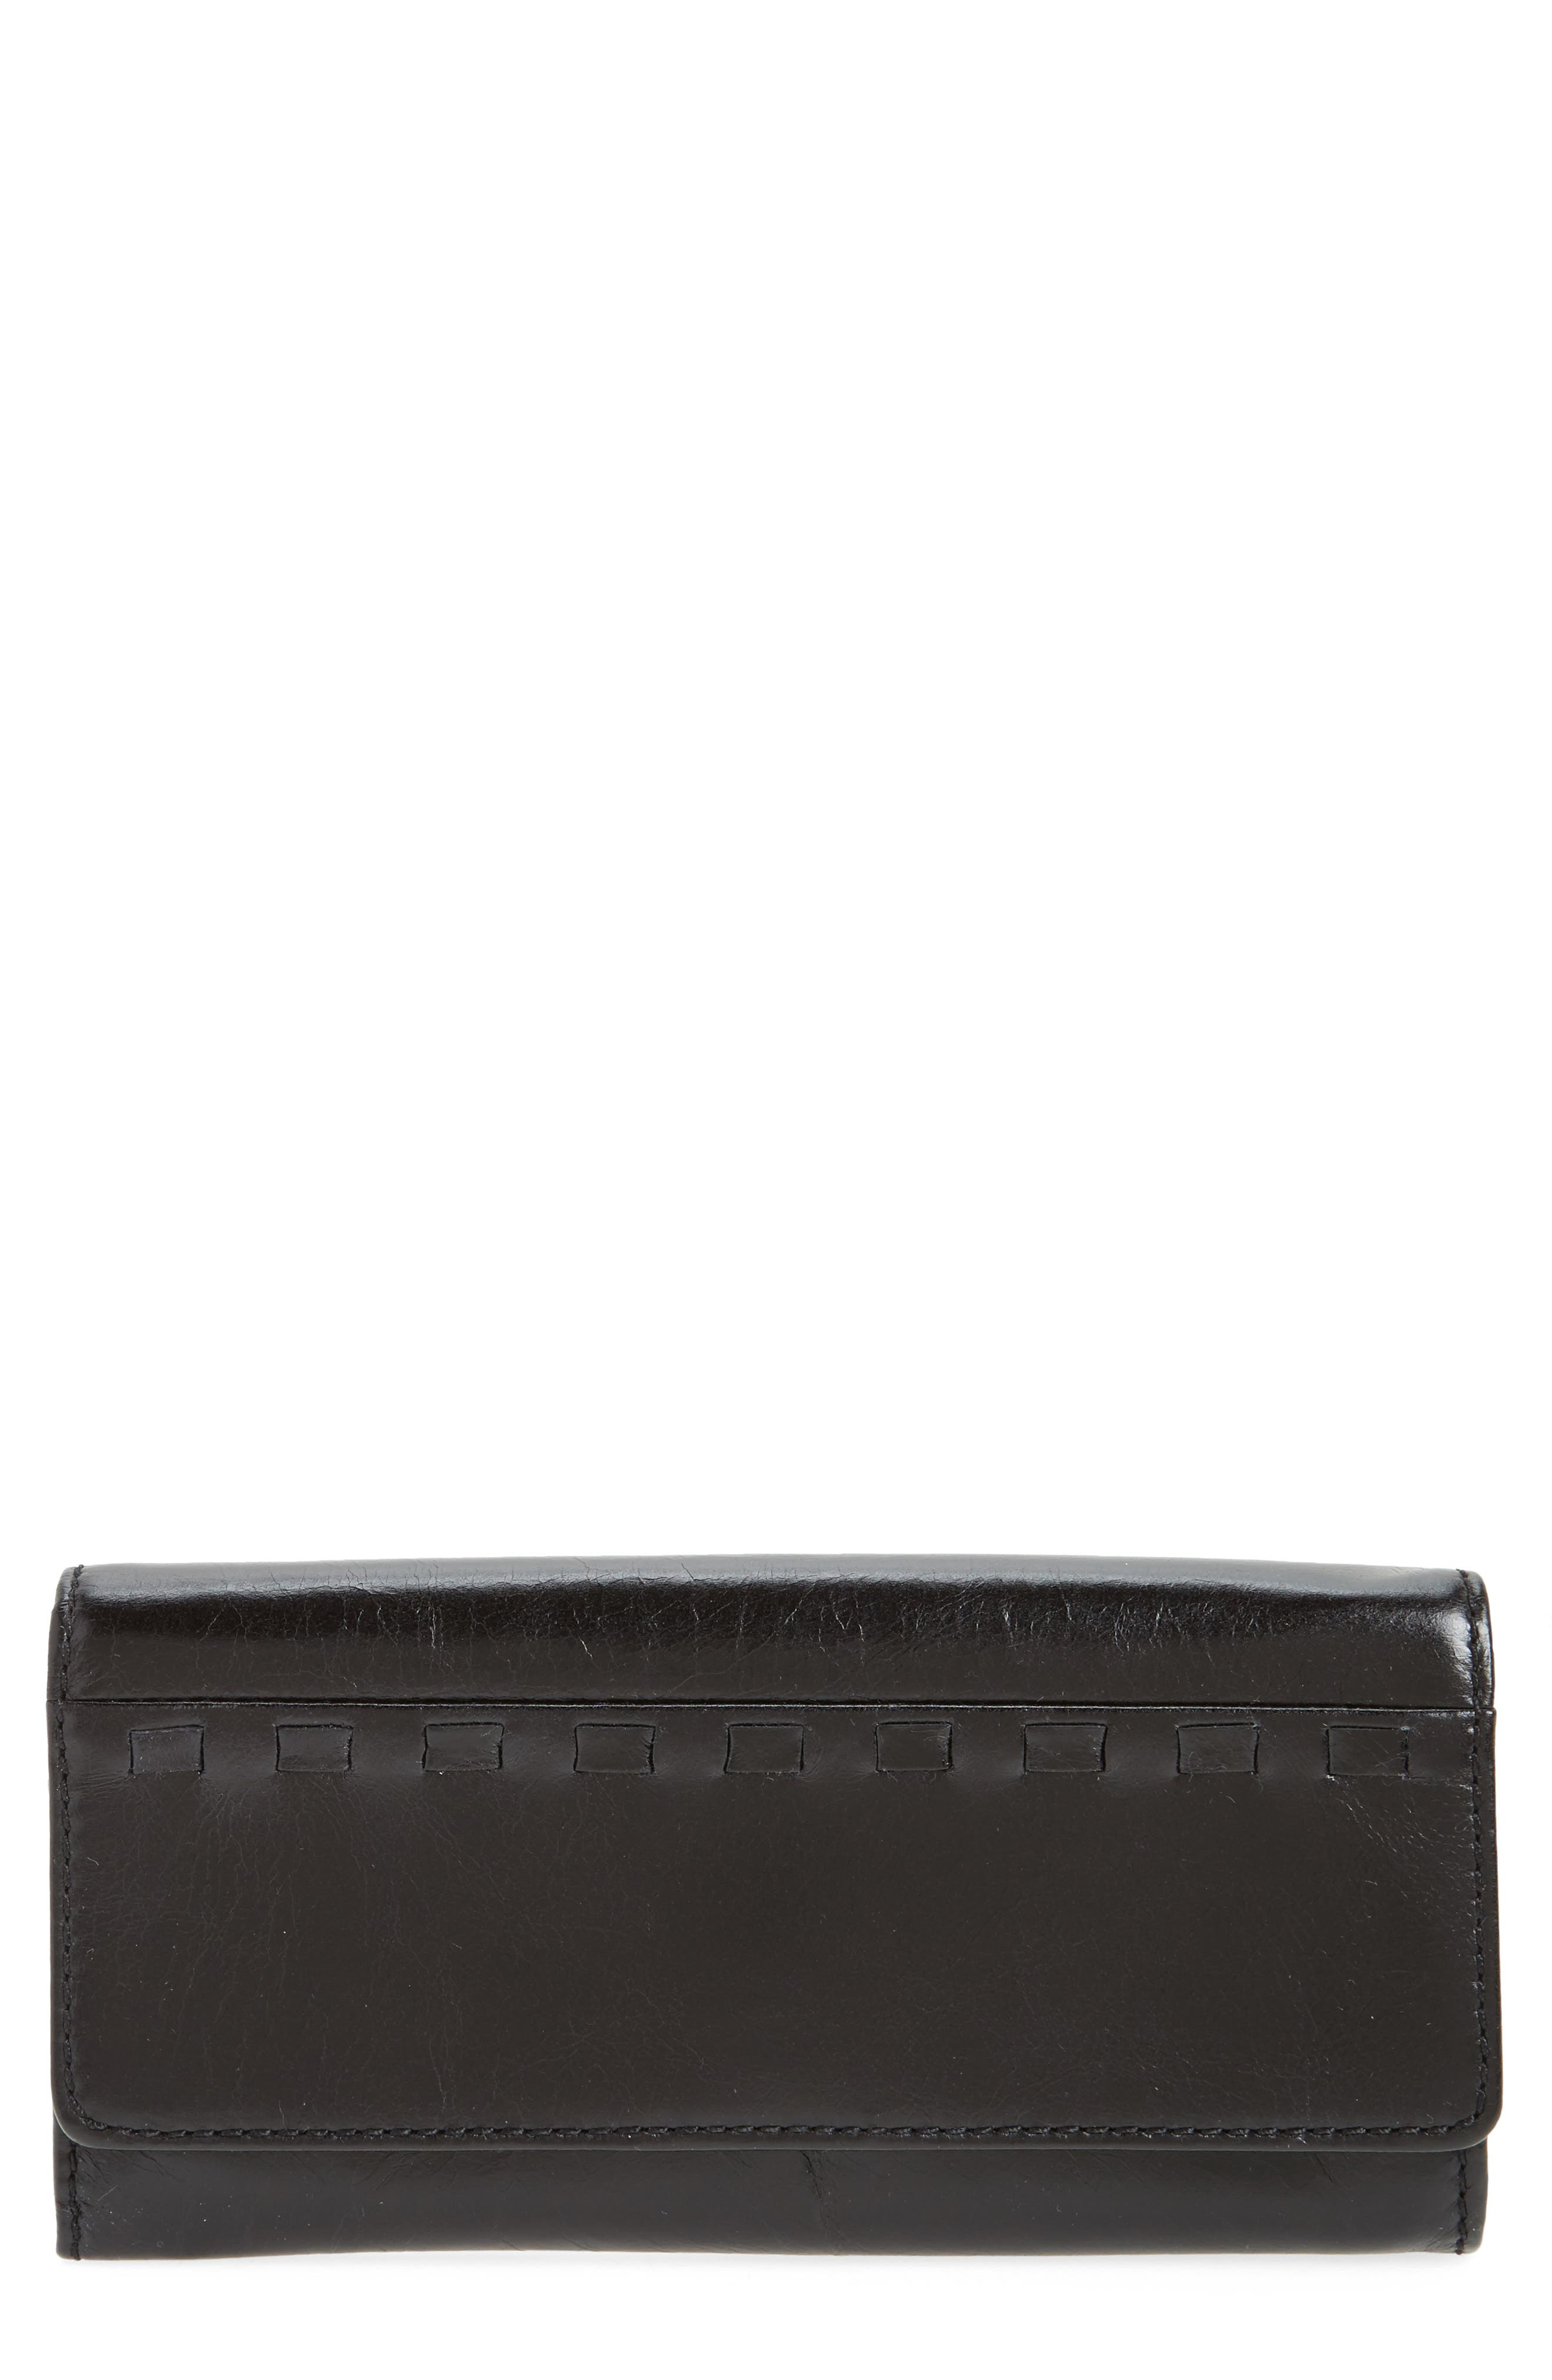 Hobo Rider Leather Wallet